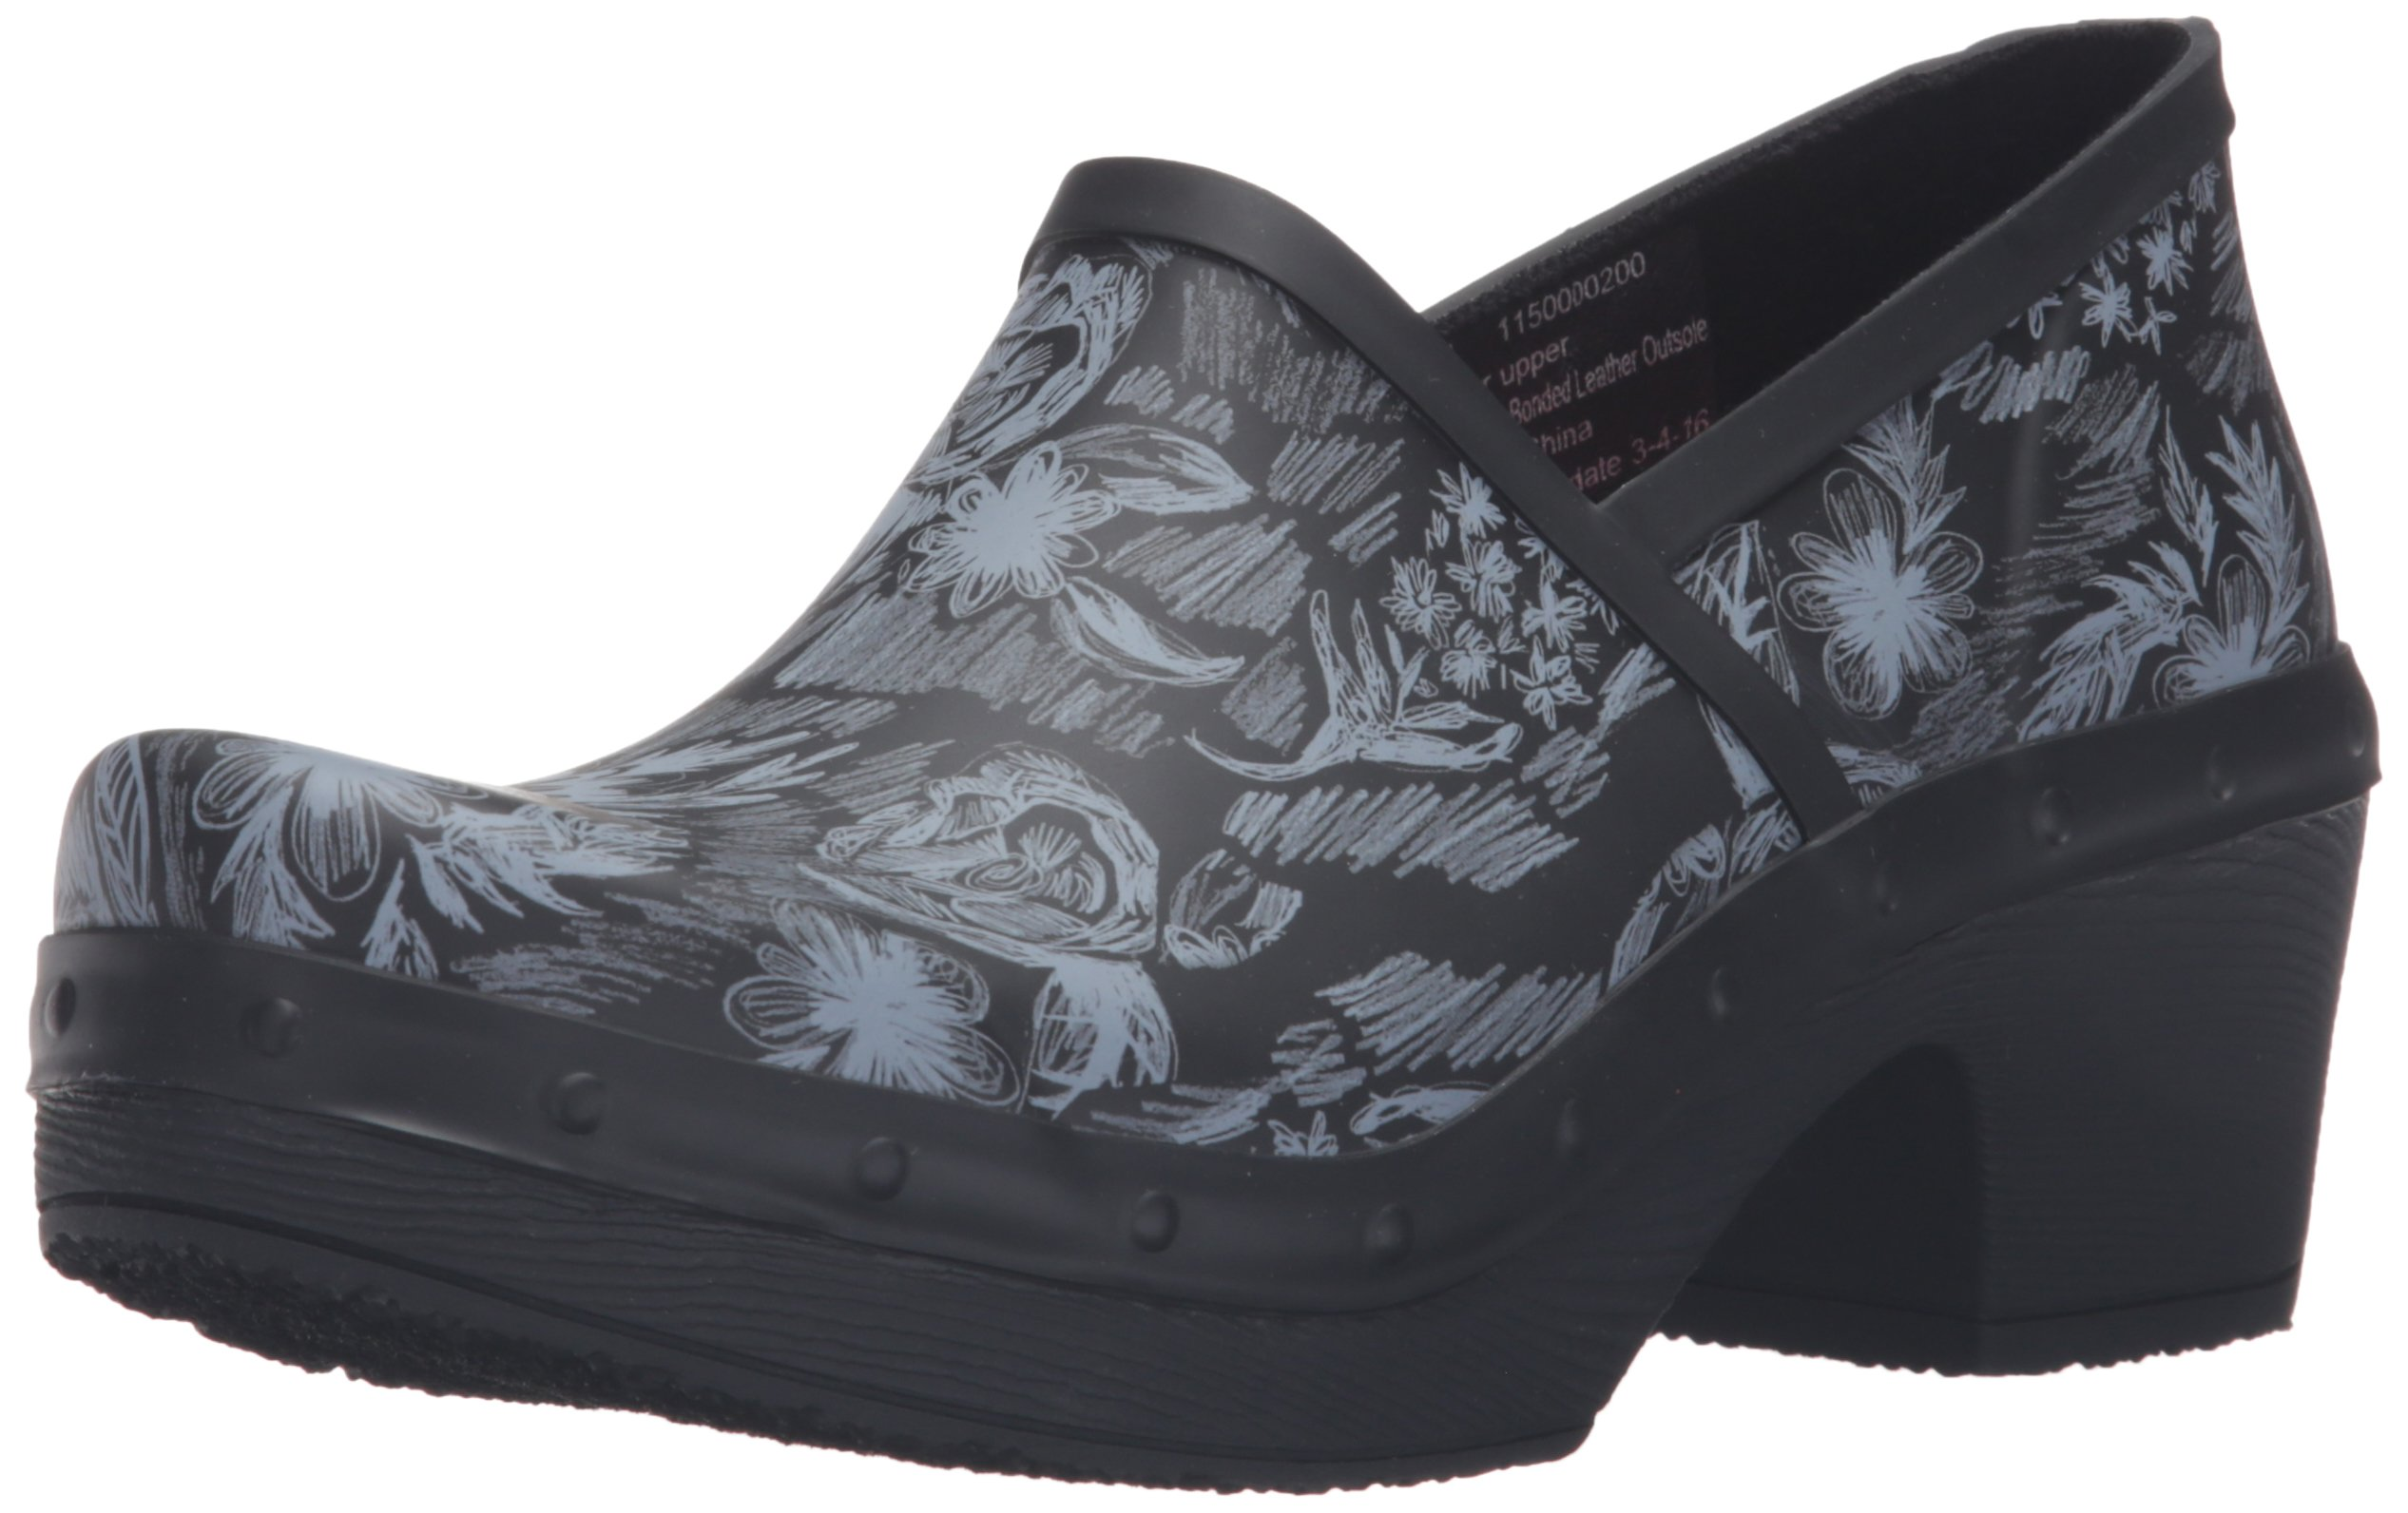 Dansko Women's Richelle Rain Shoe, Black/White Floral, 39 EU/8.5-9 M US